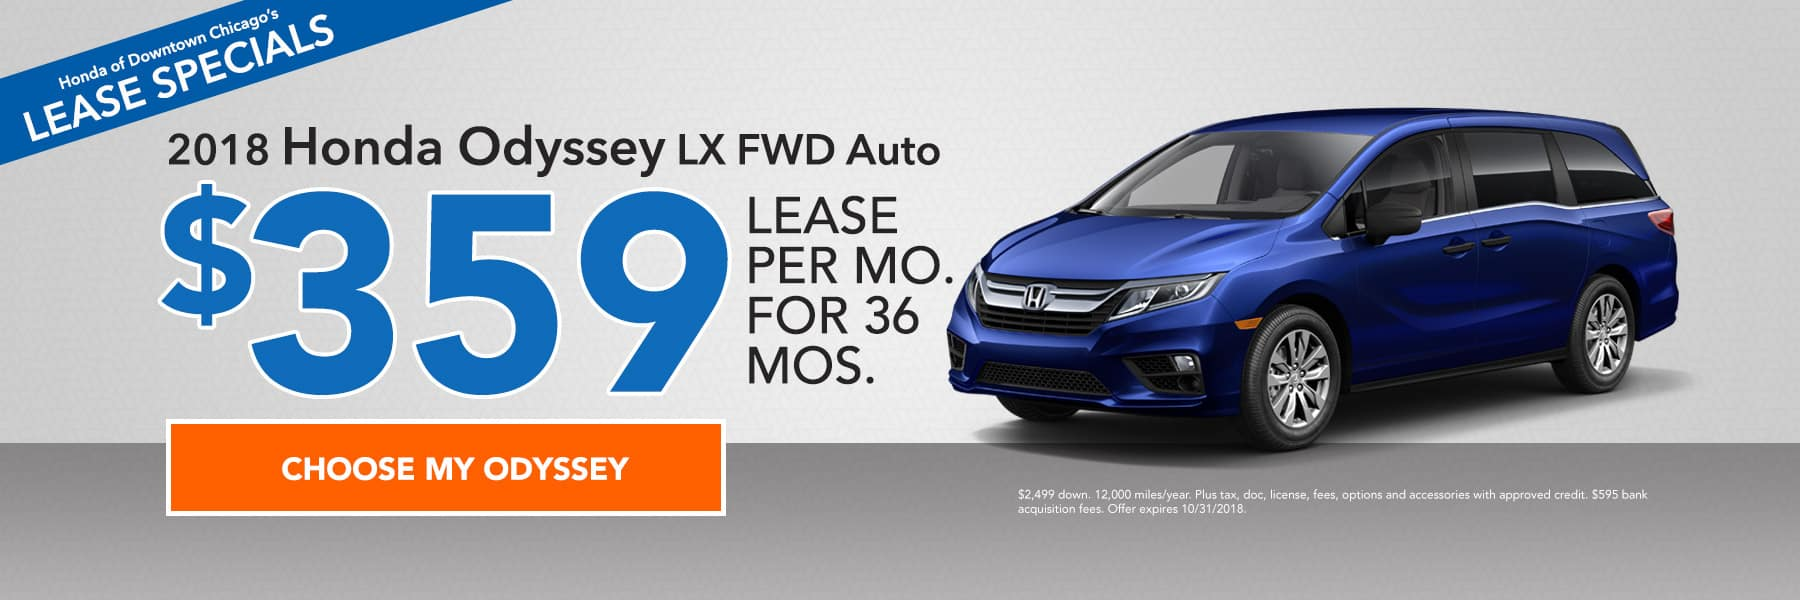 Lease specials - 2018 Honda Odyssey LX FWD Auto - Lease for $359/month for 36 months - Choose my Odyssey